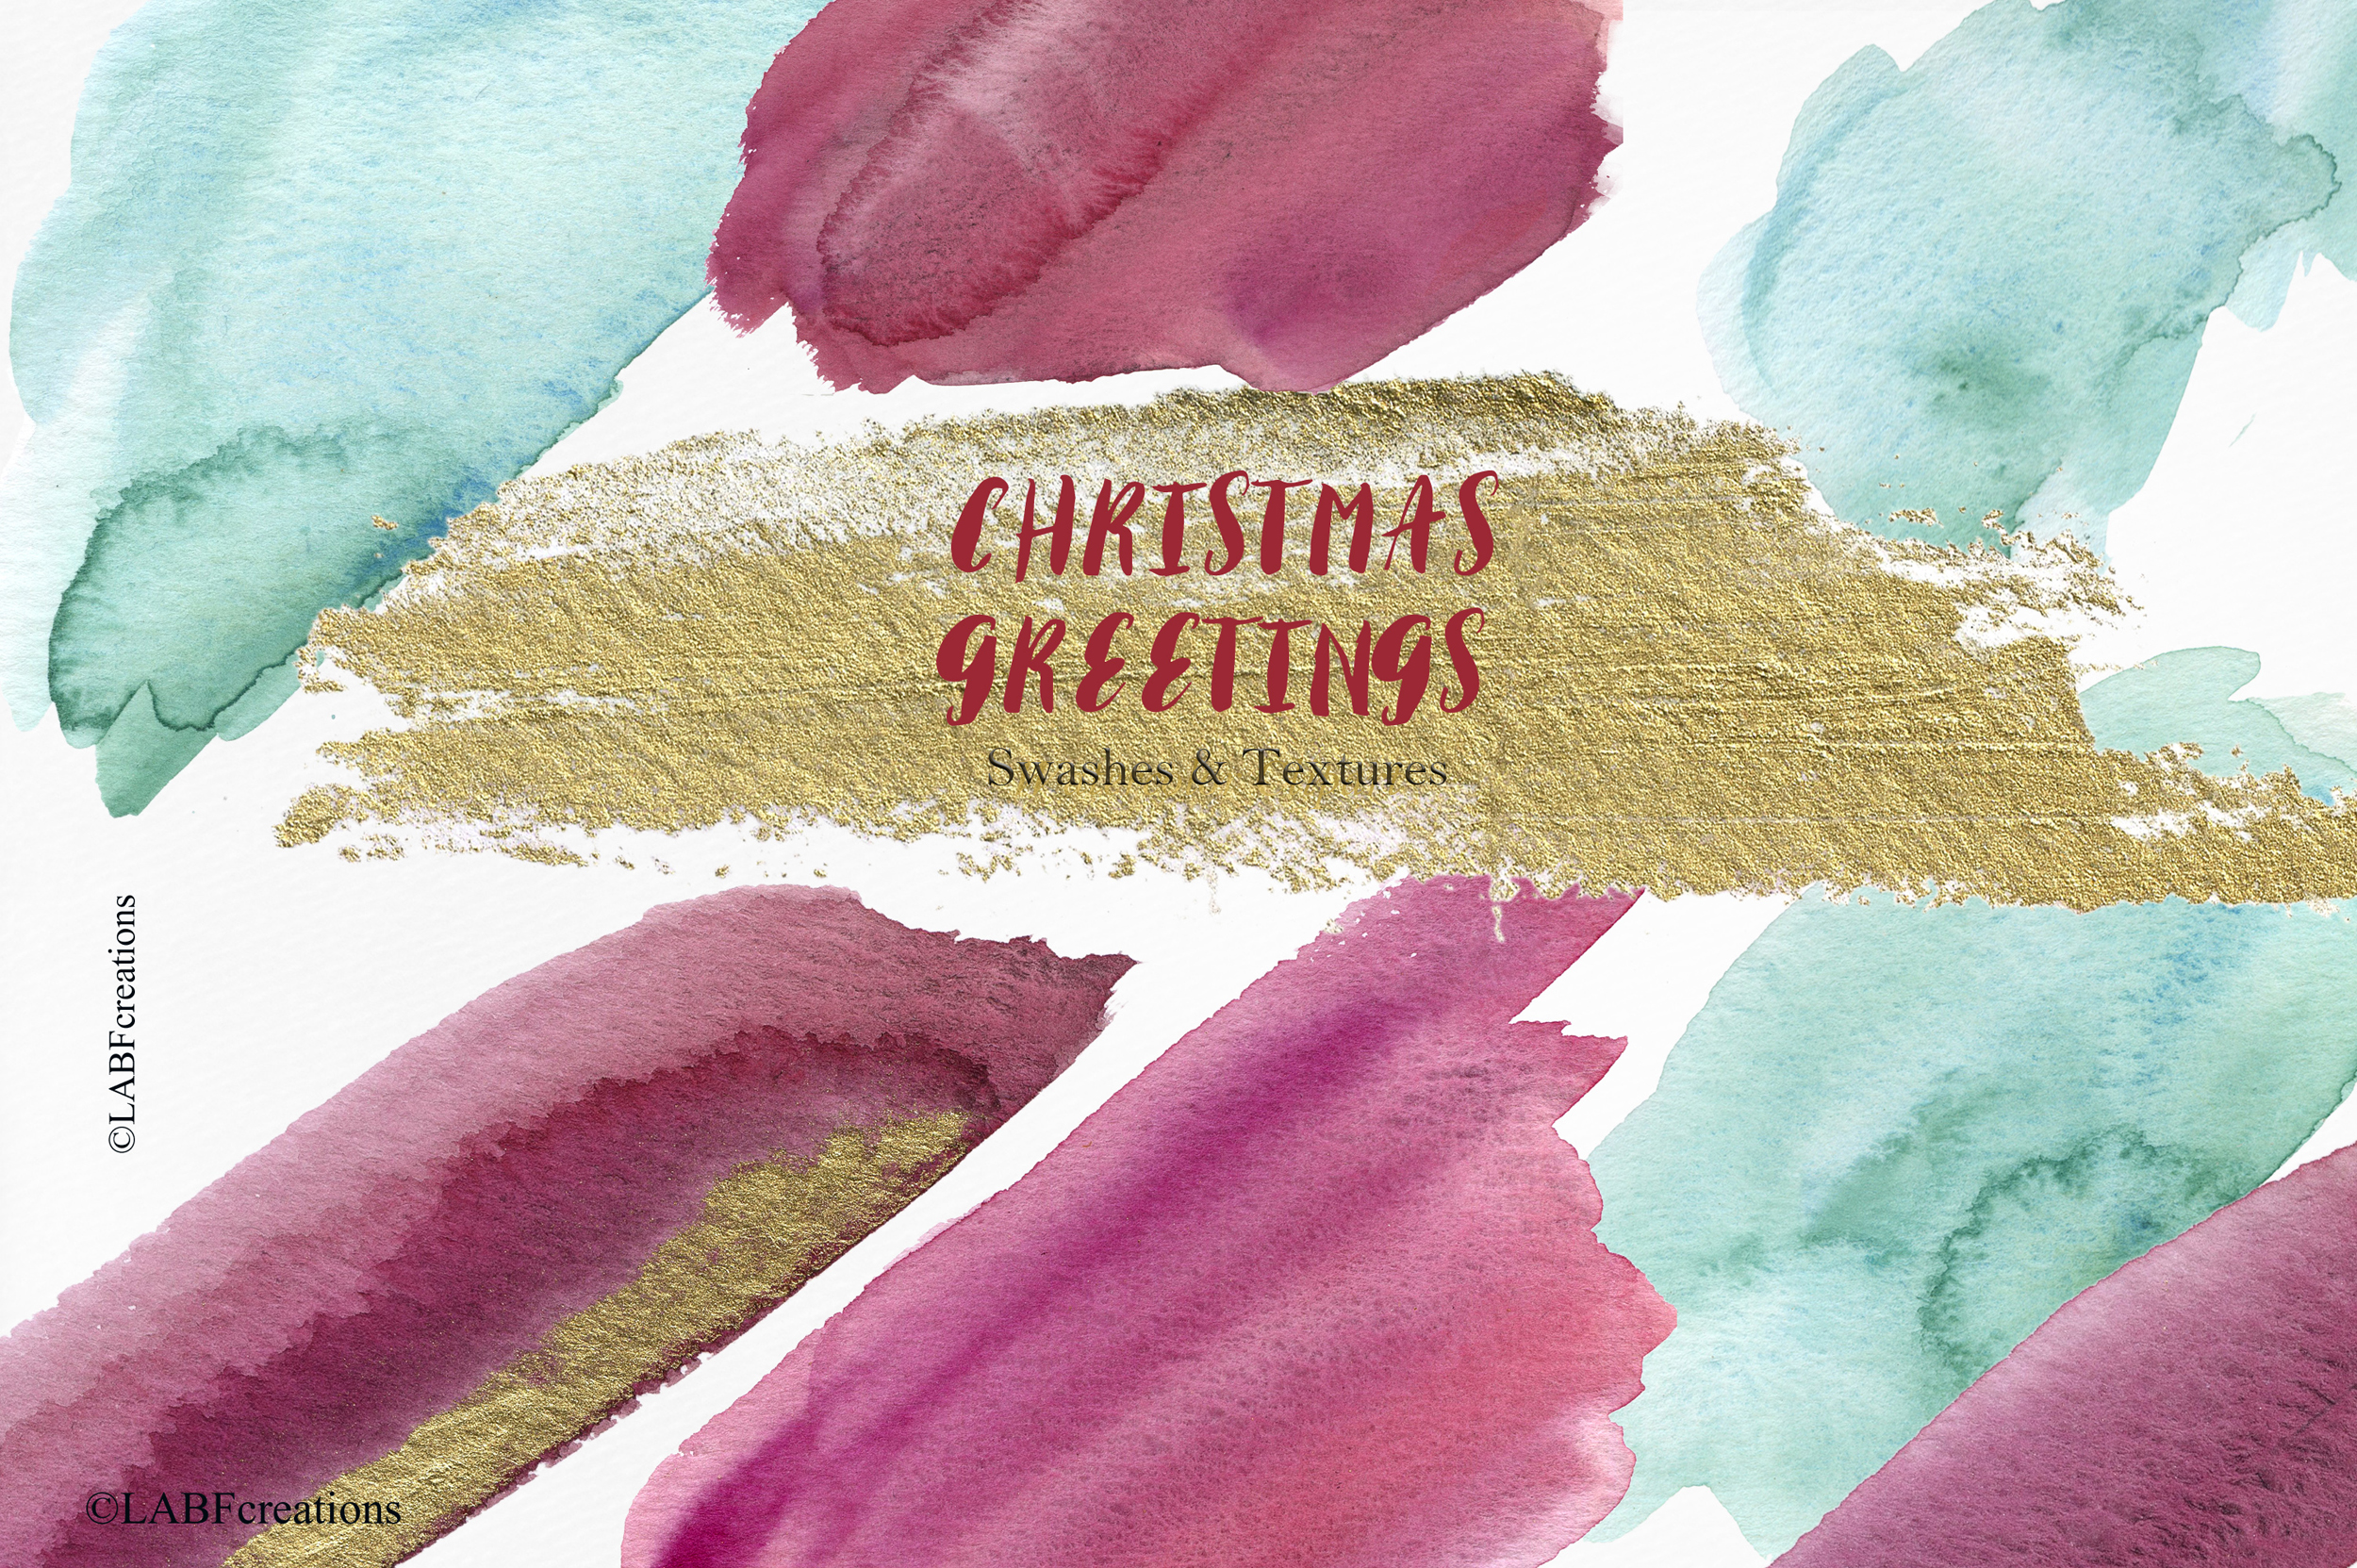 Christmas greetings. Hand drawn watercolor collection. example image 10